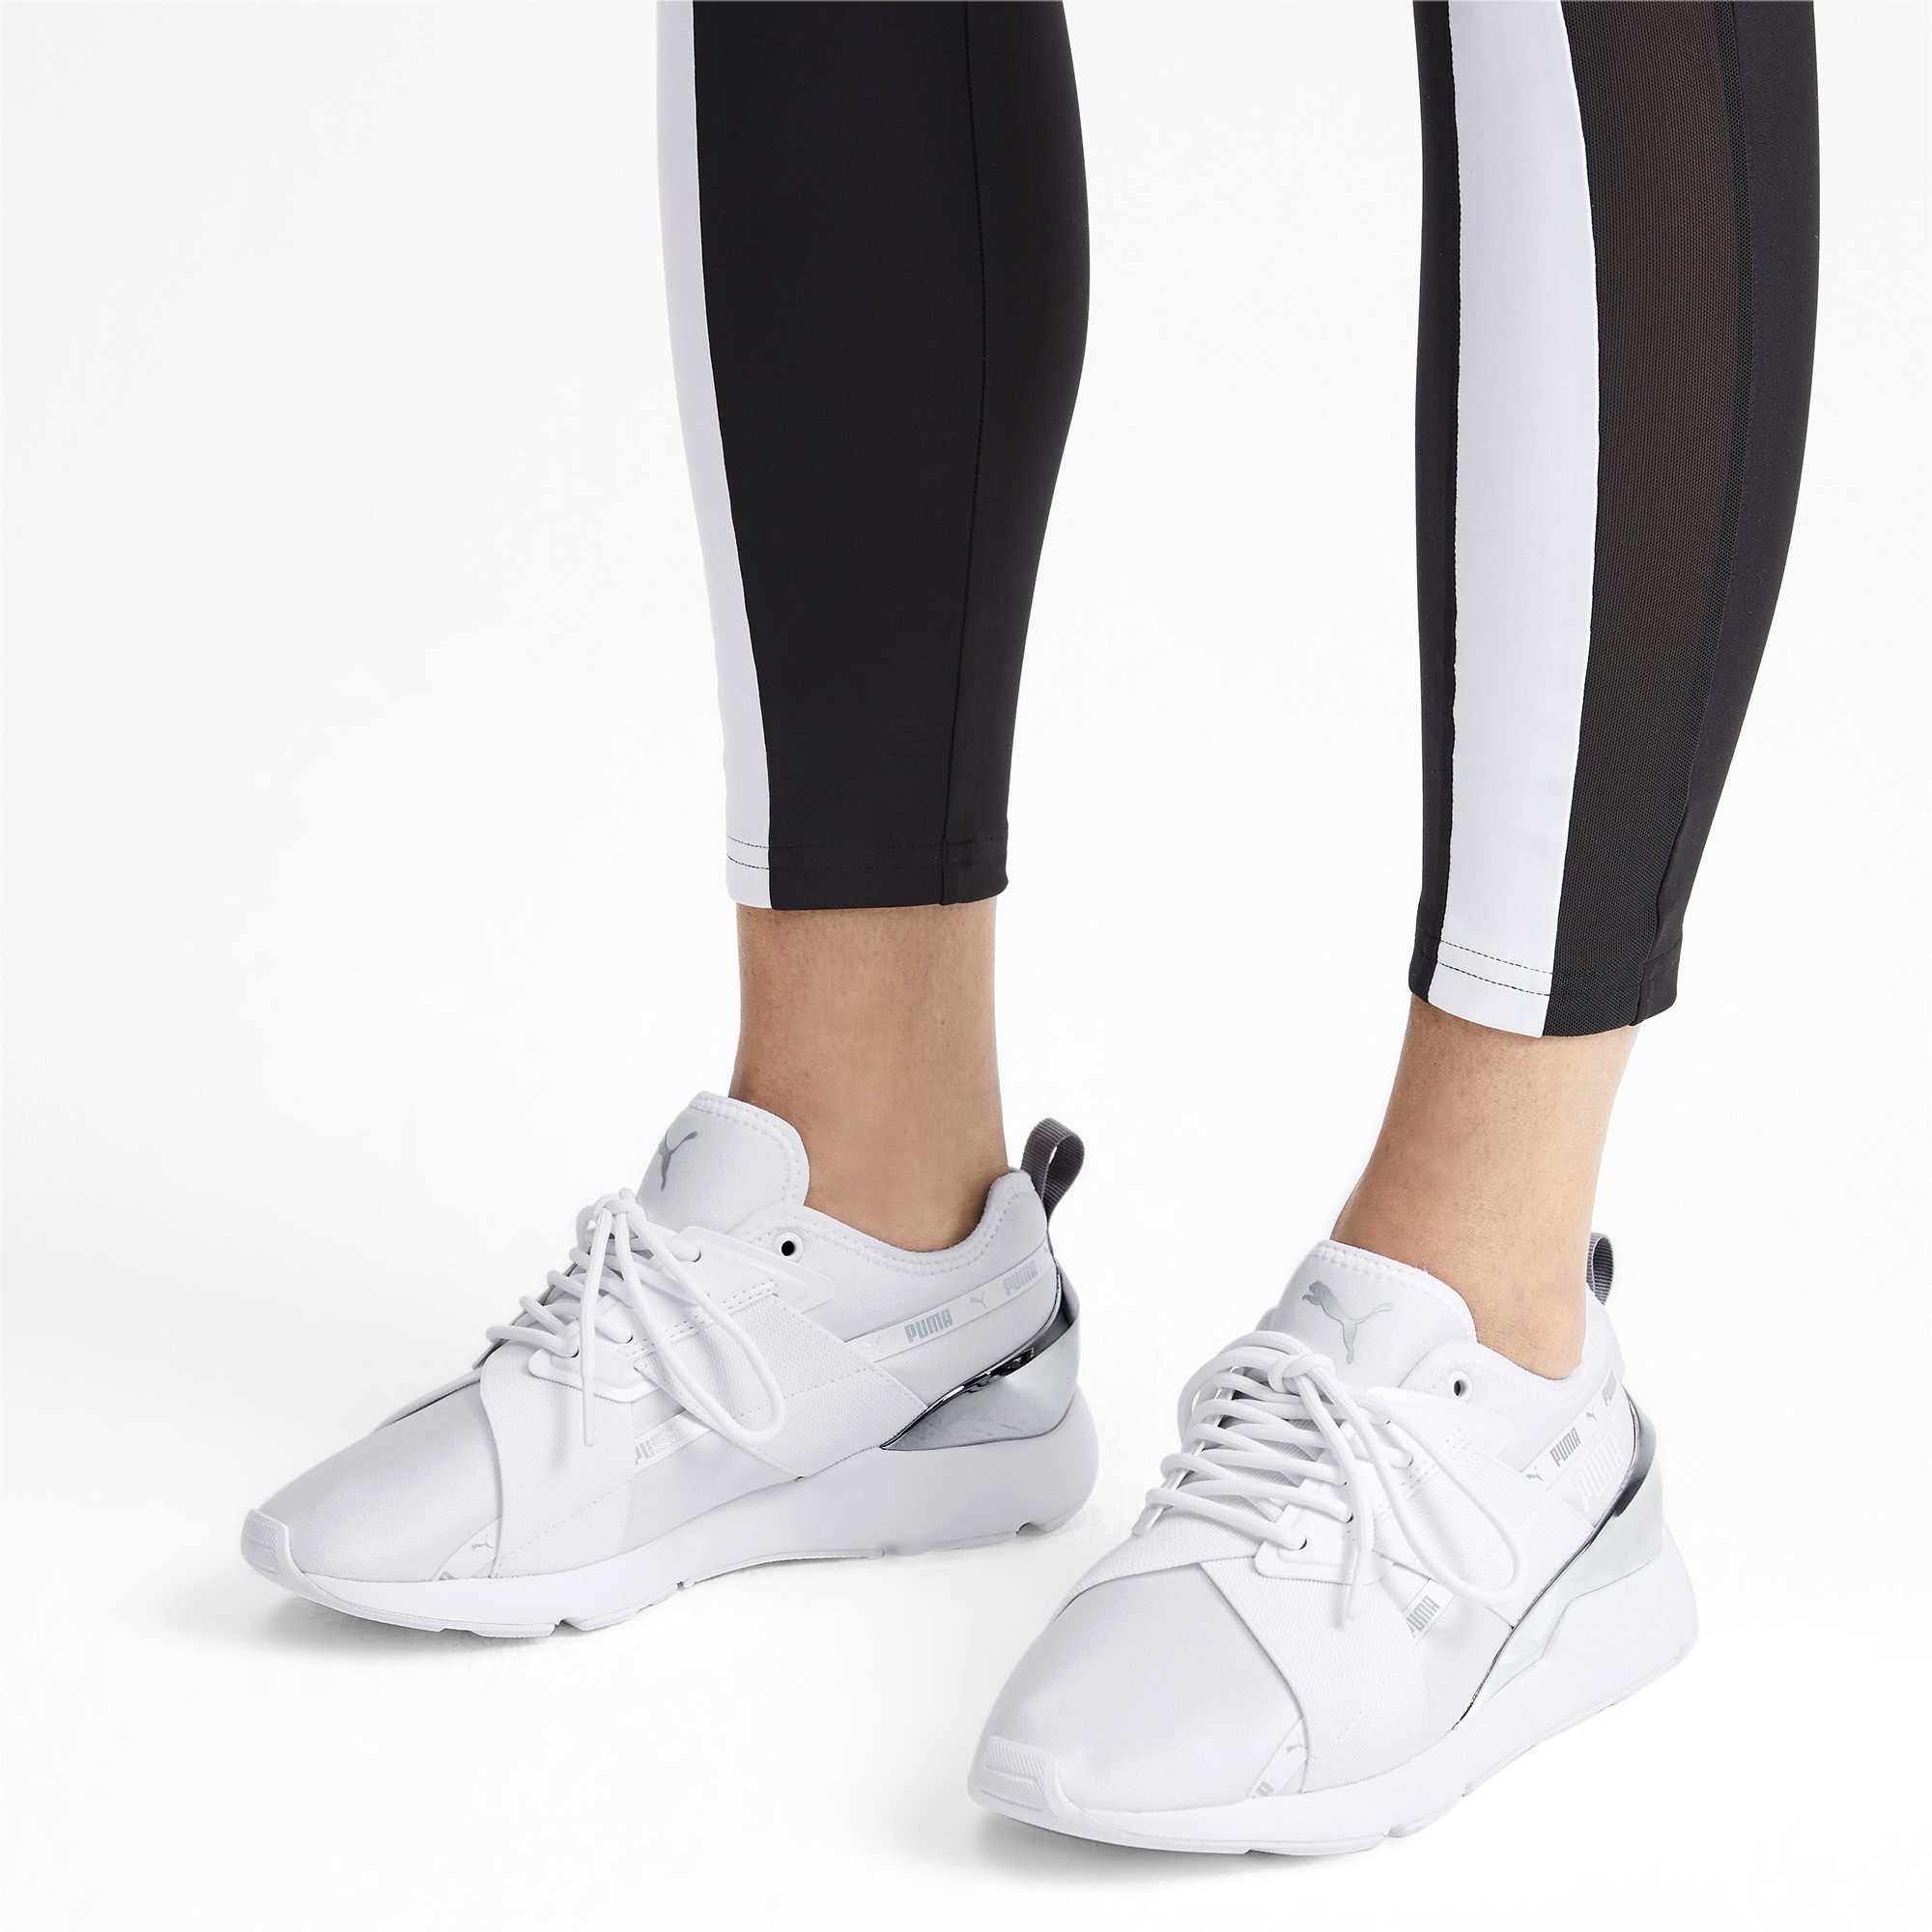 PUMA-Muse-X-2-Metallic-Women-039-s-Sneakers-Women-Shoe-Evolution thumbnail 5